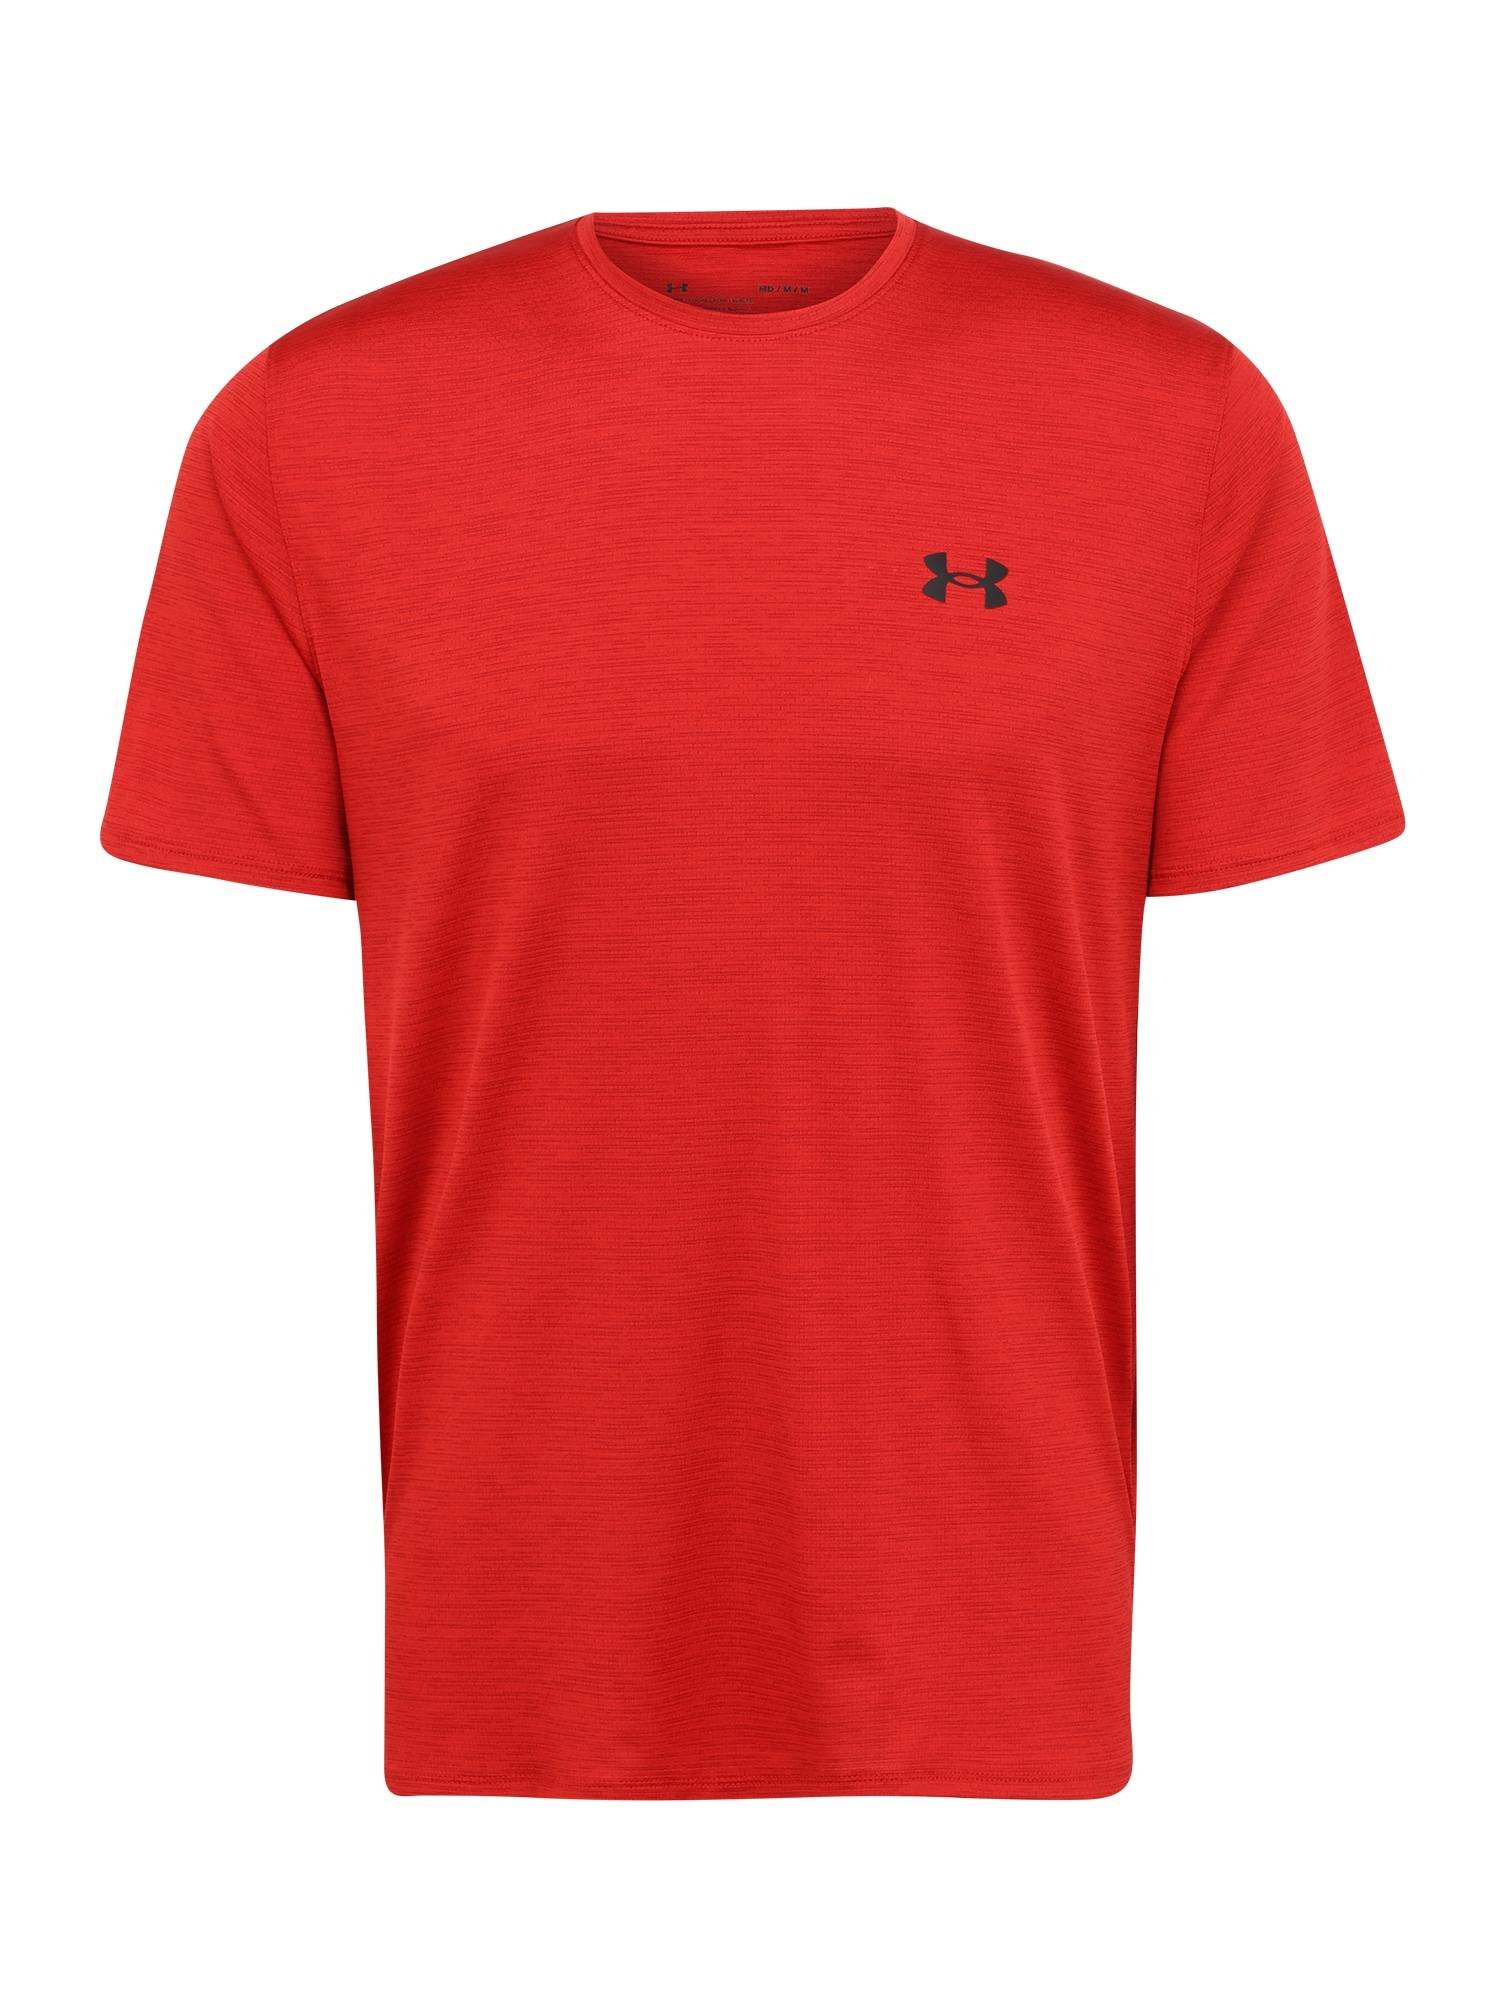 UNDER ARMOUR T-Shirt fonctionnel 'Train'  - Rouge - Taille: XL - male